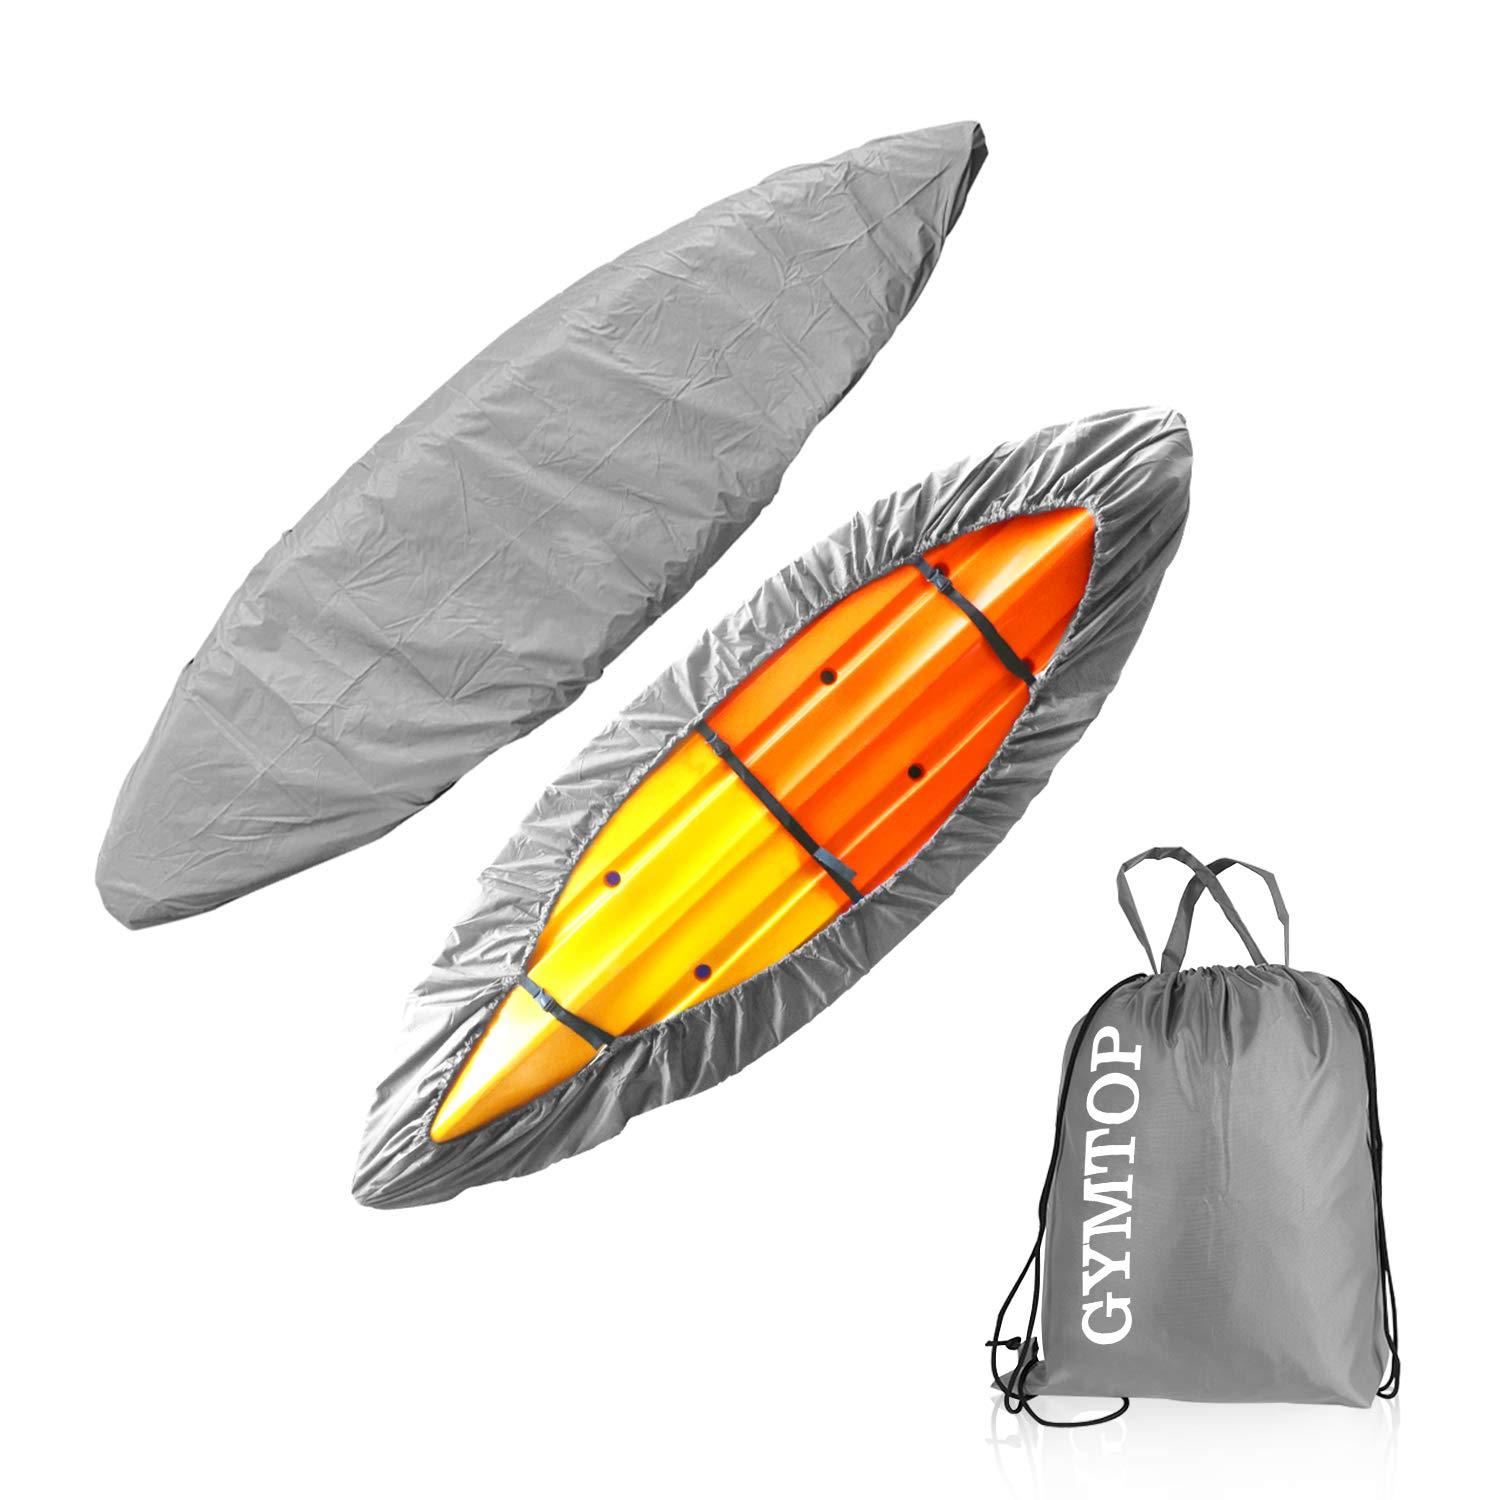 GYMTOP 7.8-18ft Waterproof Kayak Canoe Cover-Storage Dust Cover UV Protection Sunblock Shield for Fishing Boat/Kayak/Canoe 7 Sizes [Choose Color] (Gray(Upgraded), Suitable for 16.8-18ft Kayak) by GYMTOP